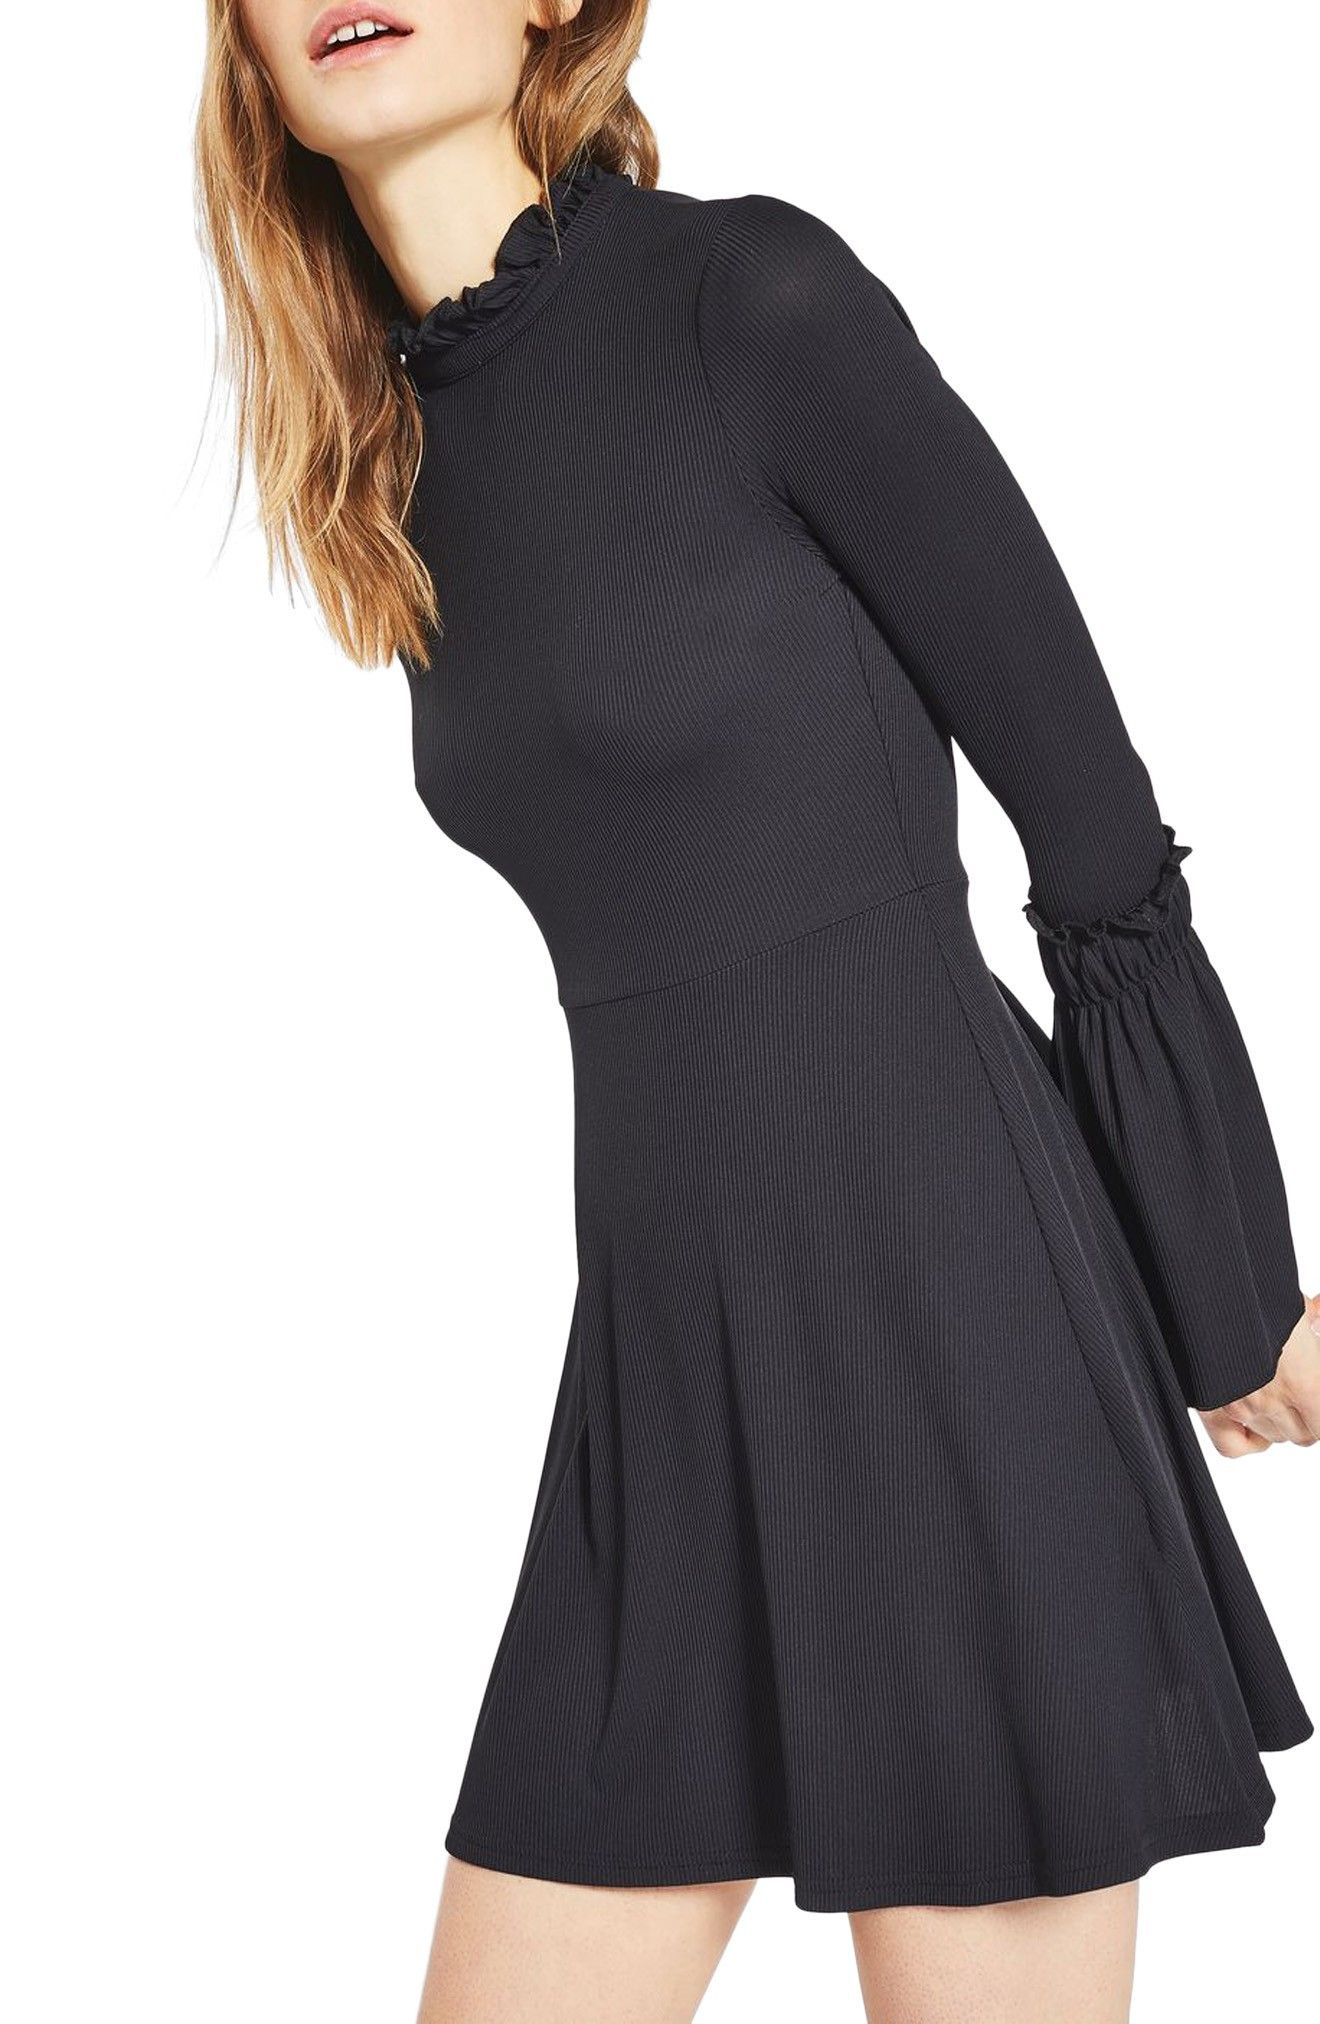 Long sleeve black leather skater dress